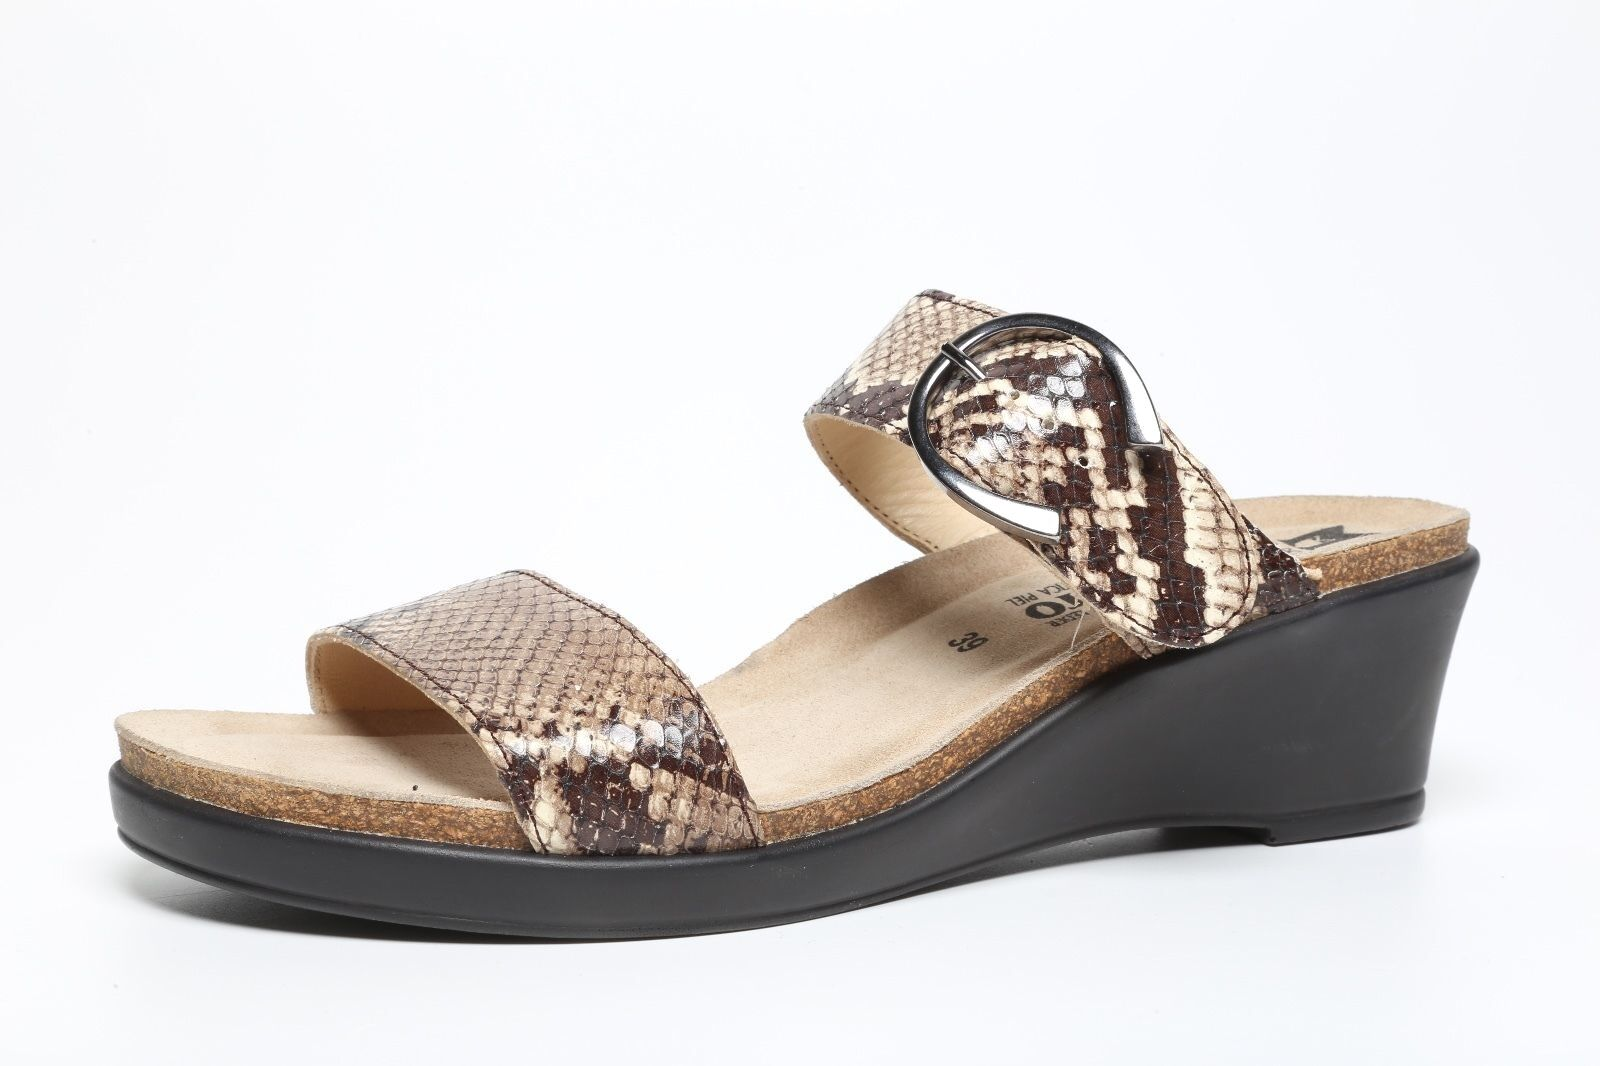 Mephisto femmes Air Relax Snake Print Leather Wedge Slide Sandals 2844 Sz 39 EUR